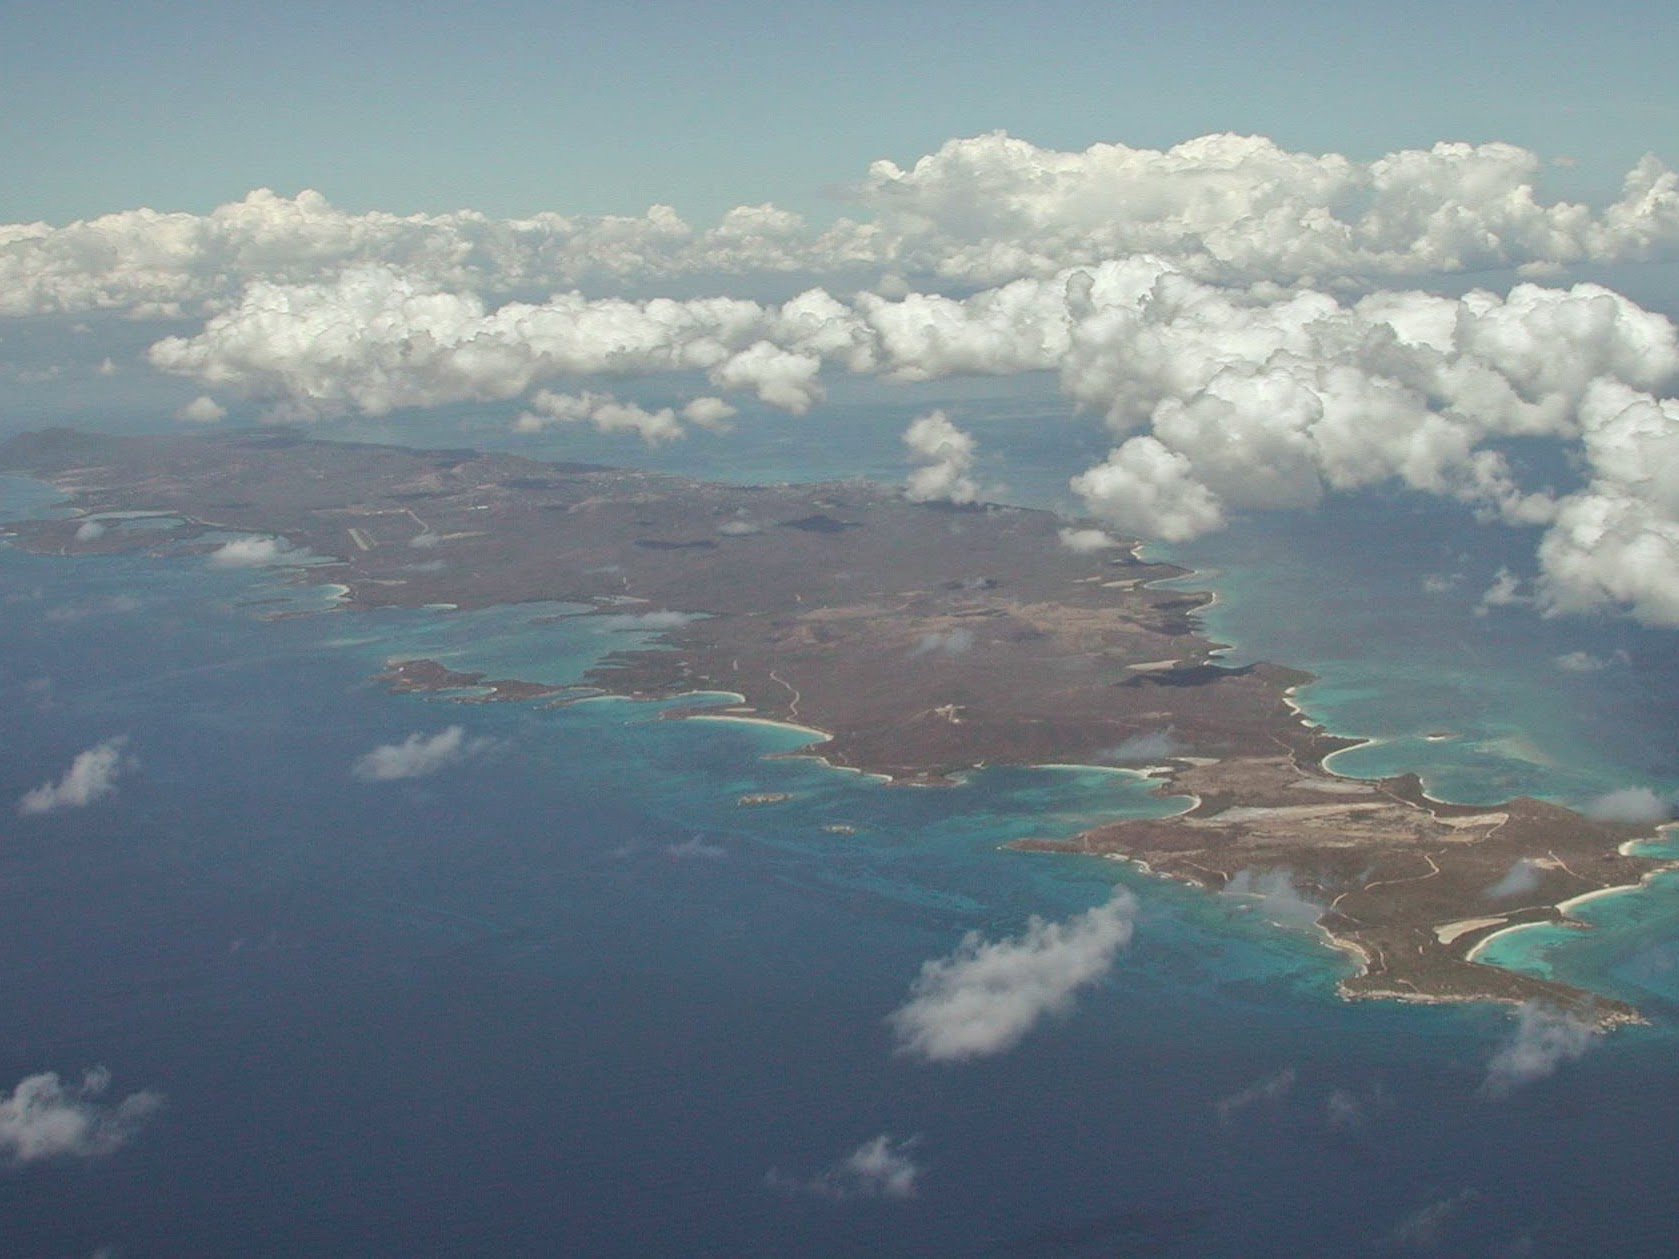 Vieques, an island off the island of Puerto Rico, where we operate a bed-and-breakfast.